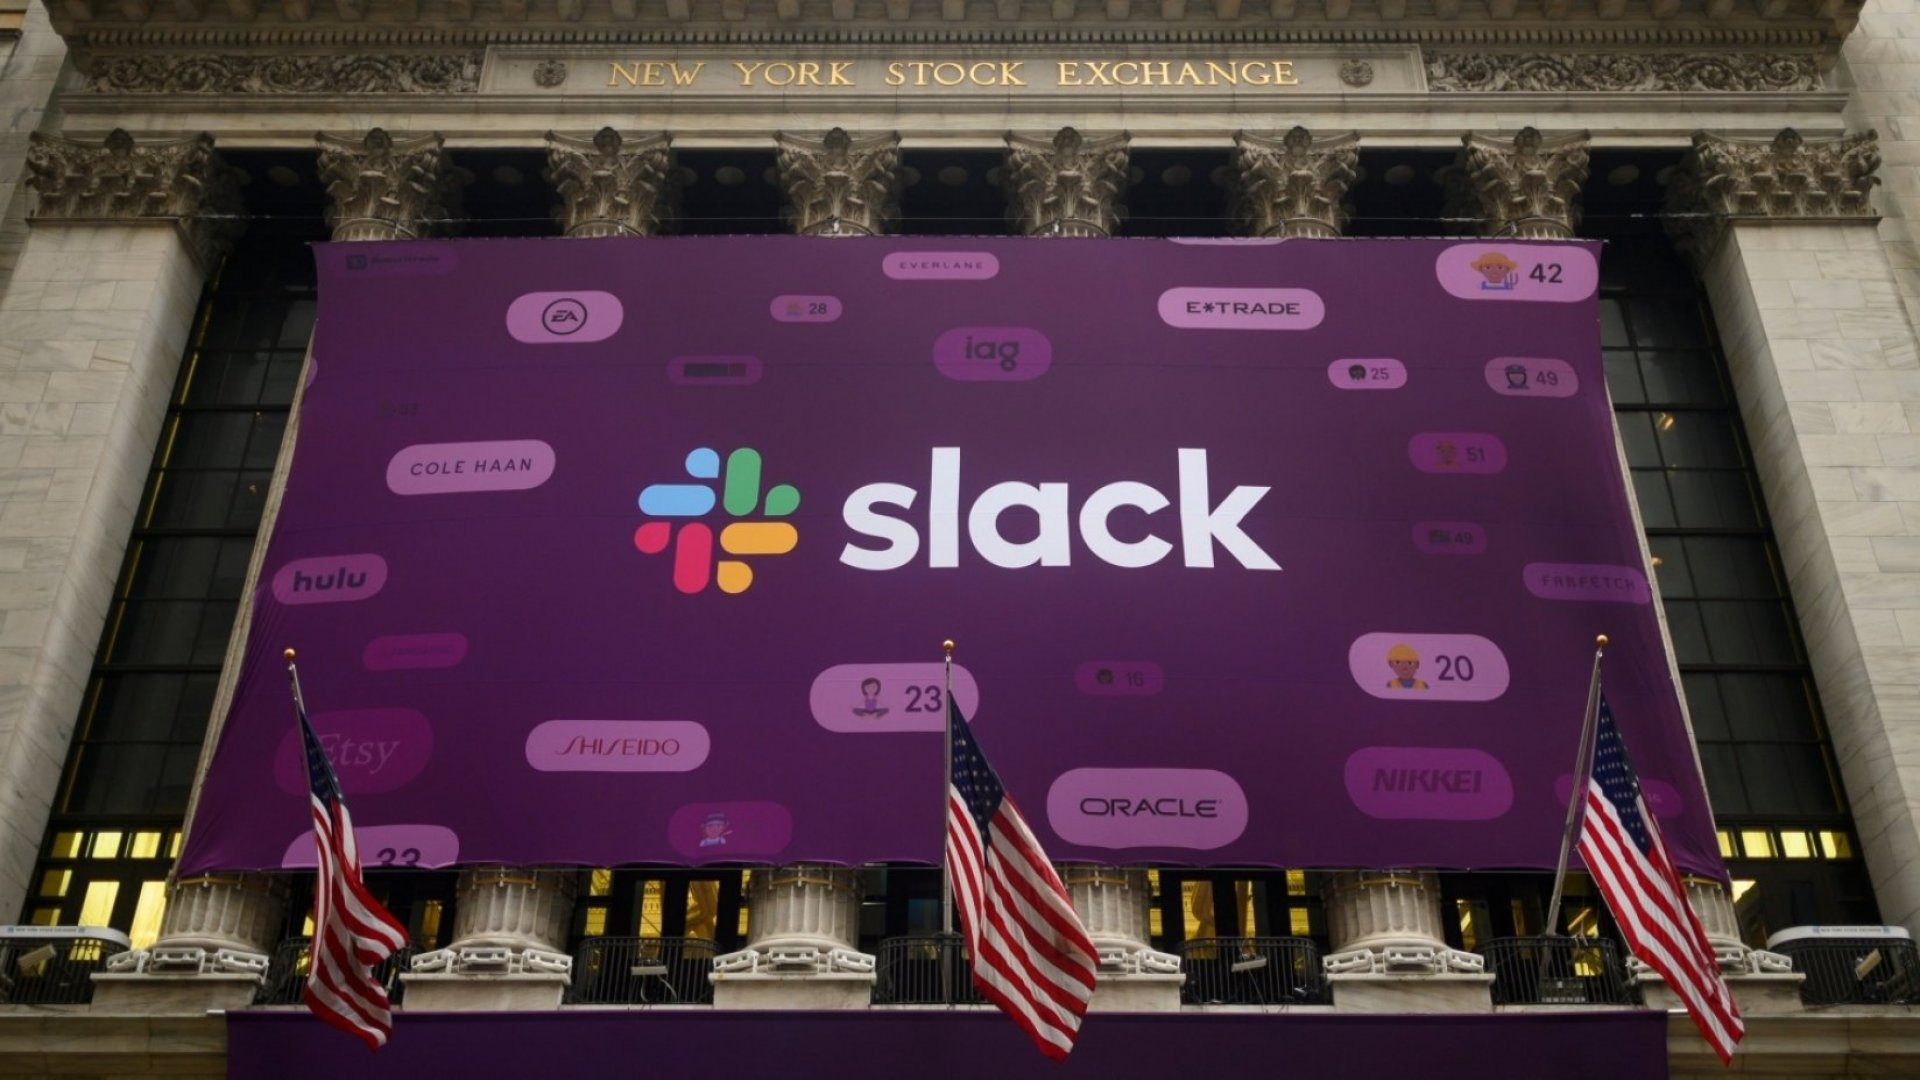 Slack, a messaging platform, went public on June 20, 2019 and skyrocketed in value on the first day of trading.